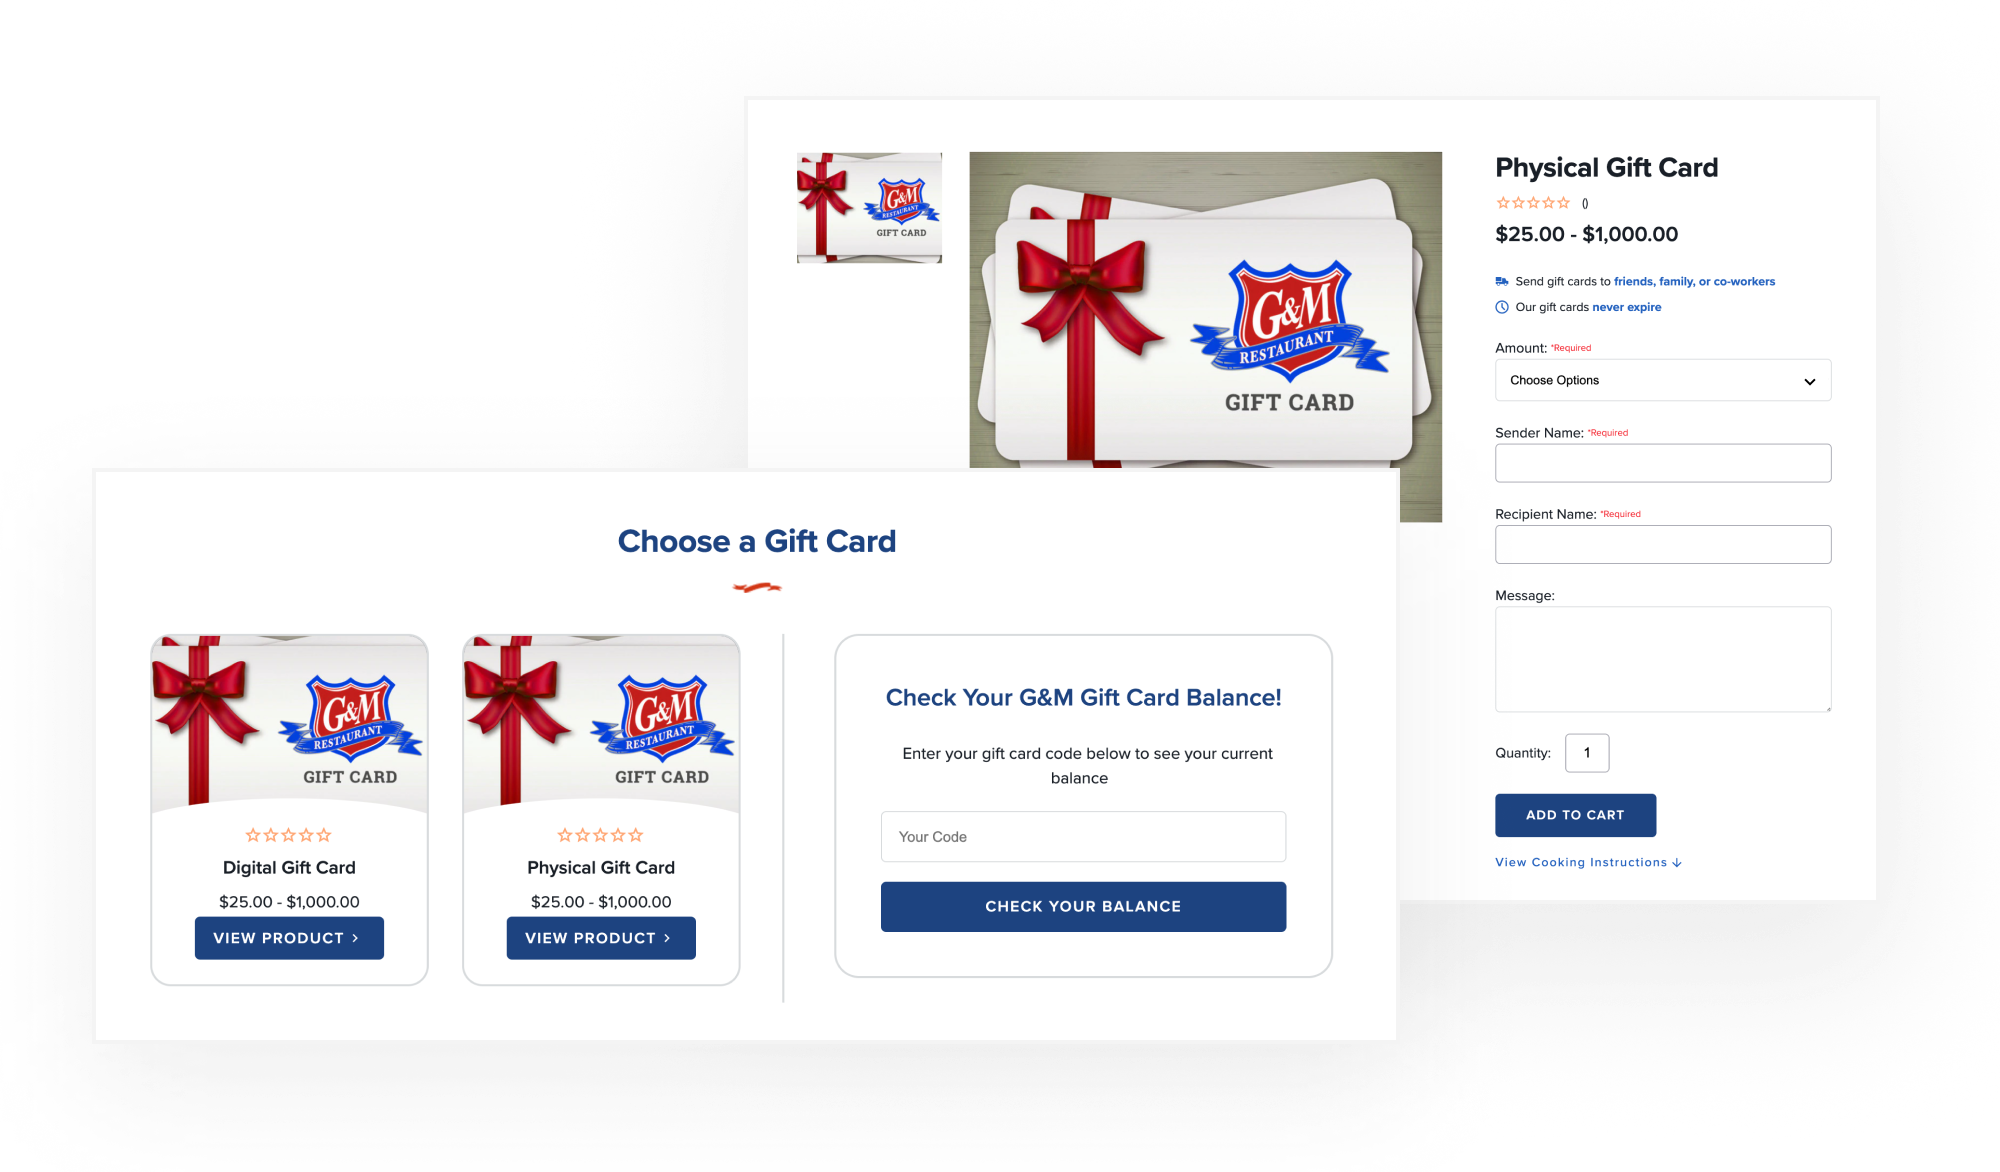 BigCommerce Givex Integration: Custom Gift Card Functionality